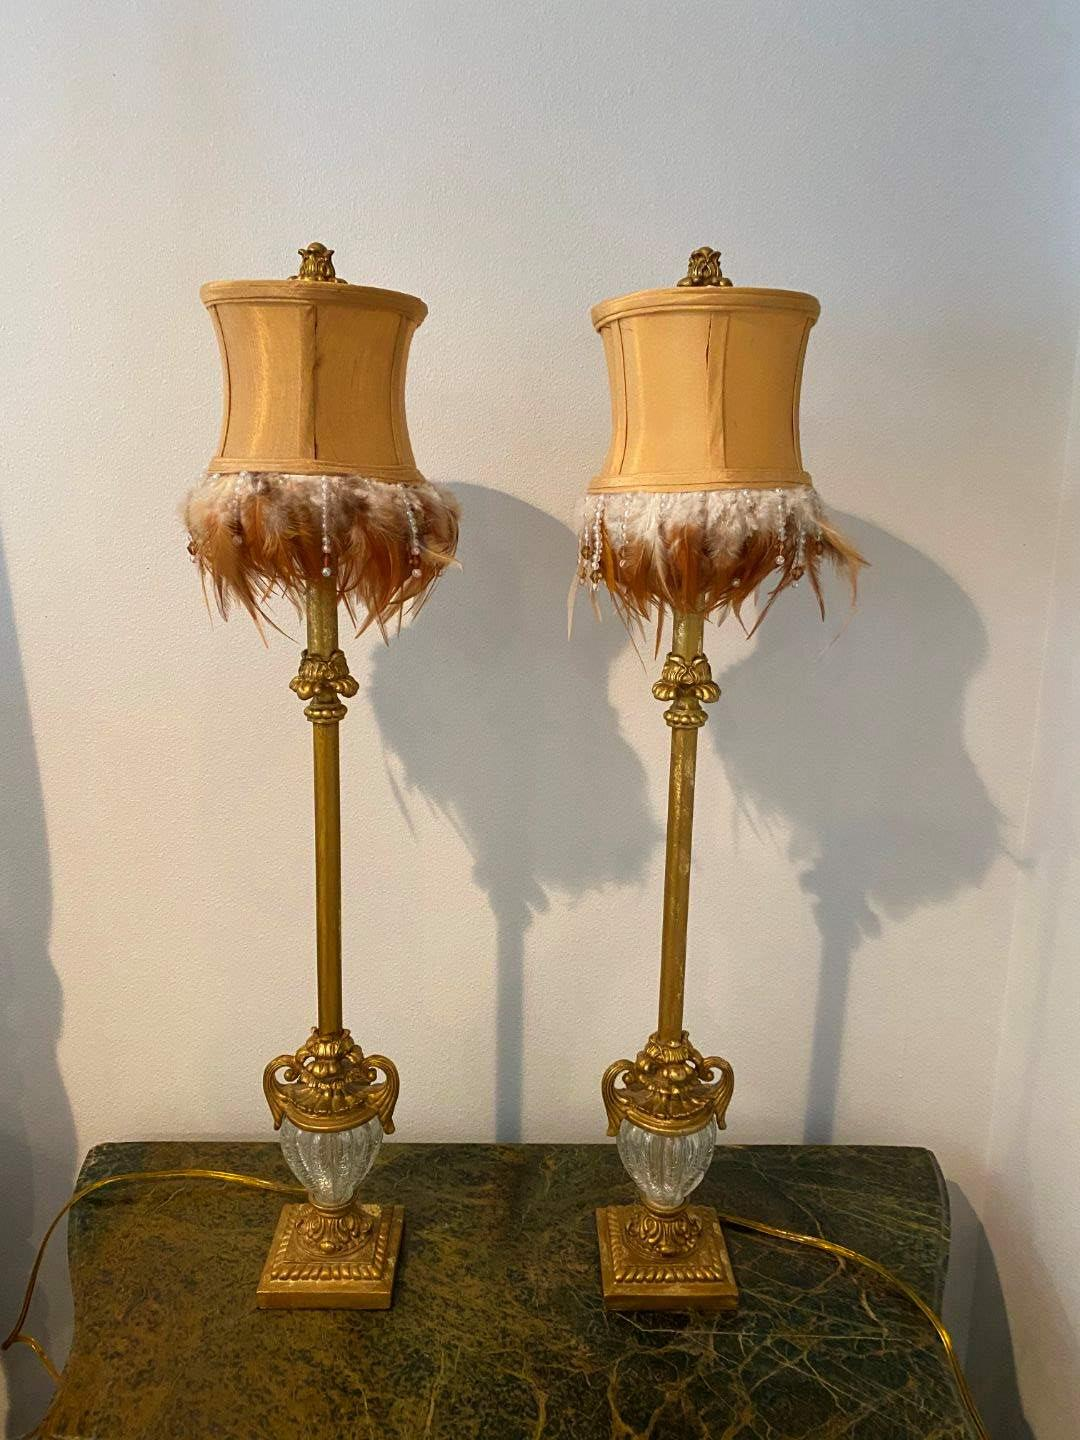 Lot # 267 - Two Metal, Glass & Wood Lamps w/Feather Shades (main image)